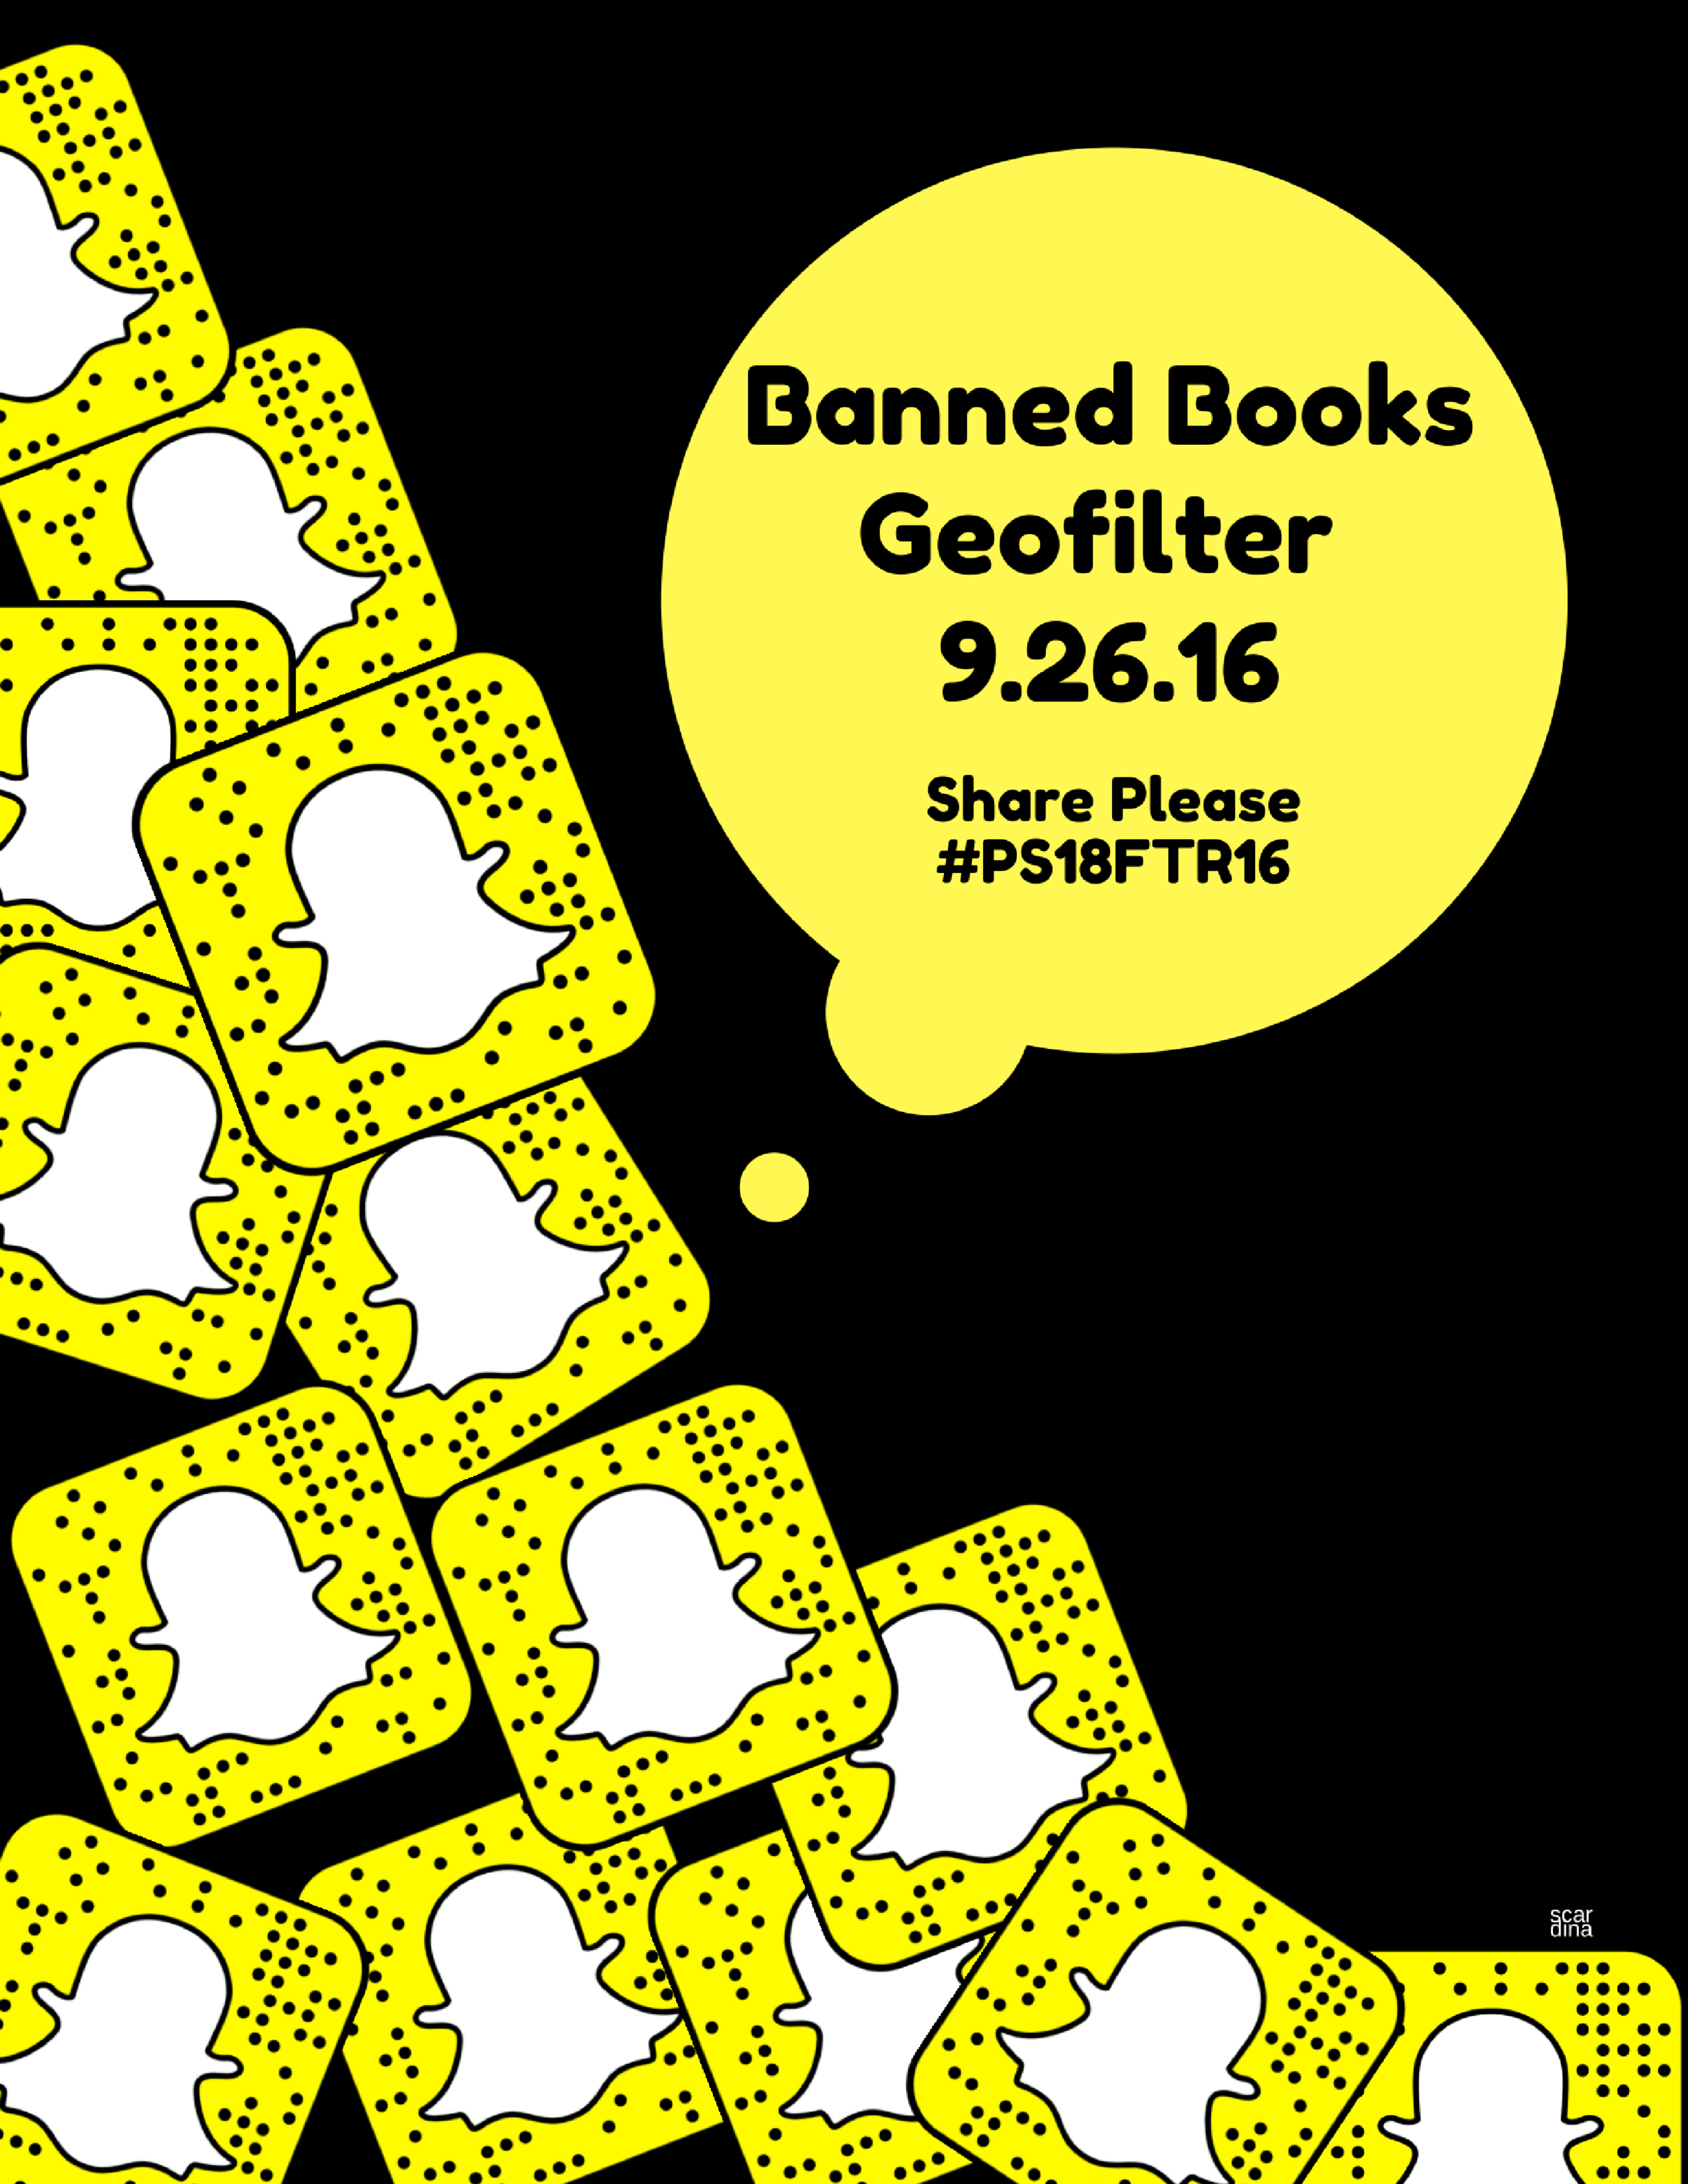 Geofilter Poster - I designed a Snapchat geofilter (see pic below)that ran for the entire first day of Banned Books Week. This is the ghost code for the library's Snapchat account.